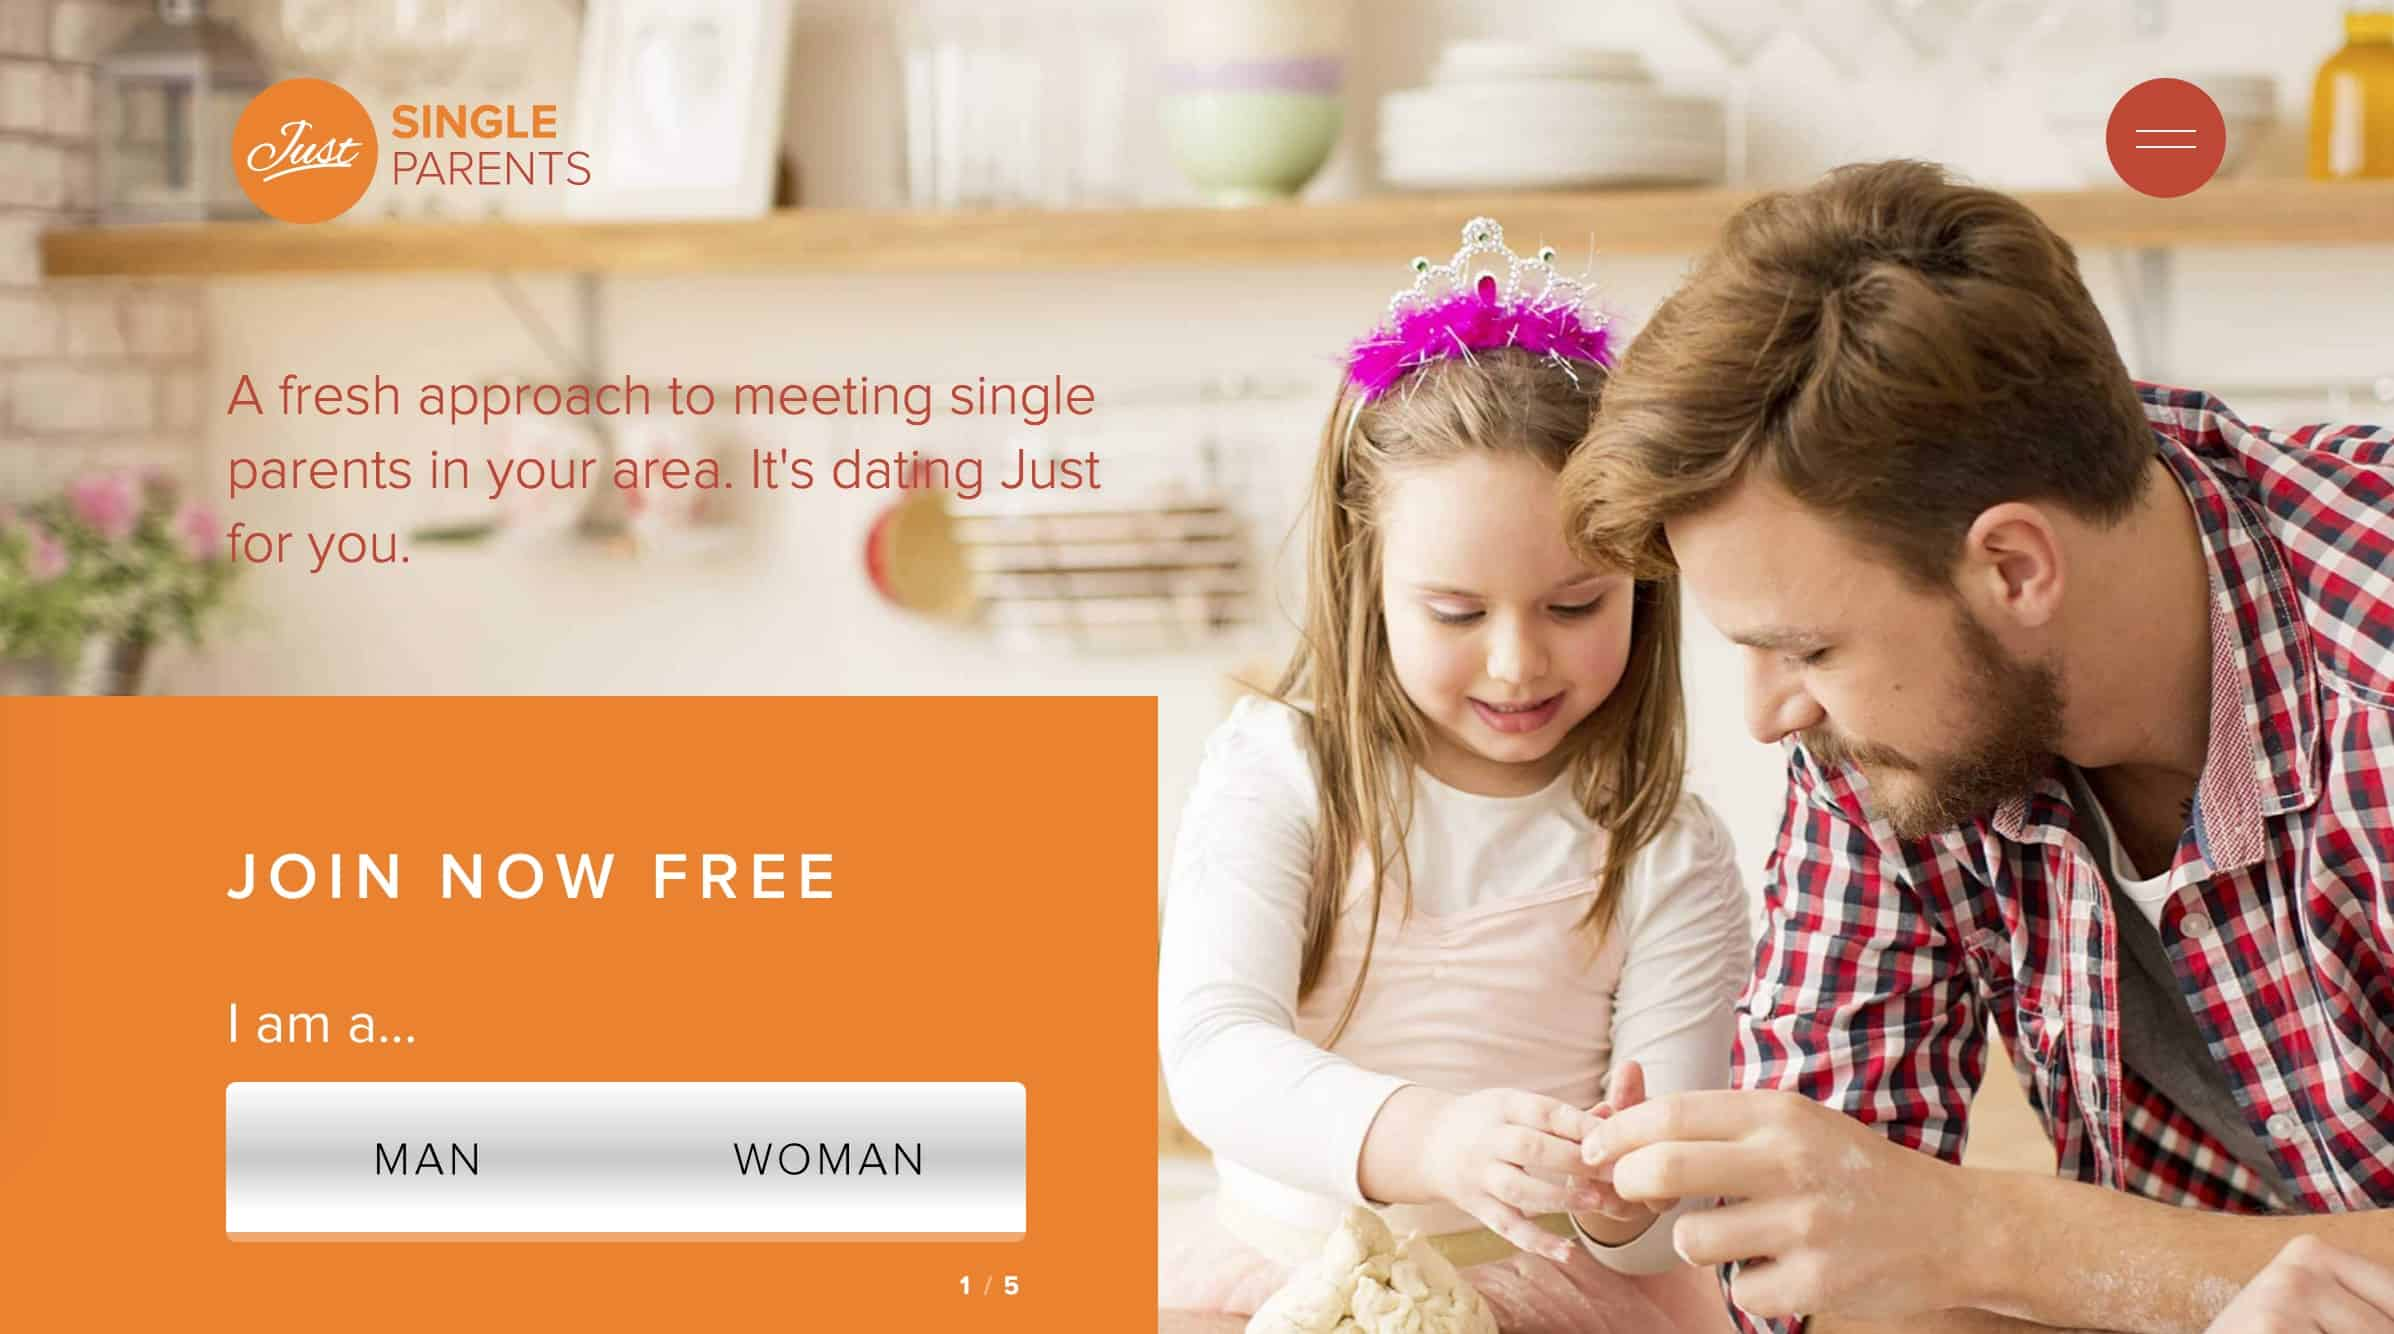 spencertown single parent dating site Single parents match named the world's first and best dating site for single mothers and fathers, the unique features of this site include single parent date ideas, forums, online chat, news, and health tips for kids with over 16+ years in dating business, the site is secure single parents mingle single parents mingle is like tinder for single parents on the site, single parents can chat, make friends, and date each other.